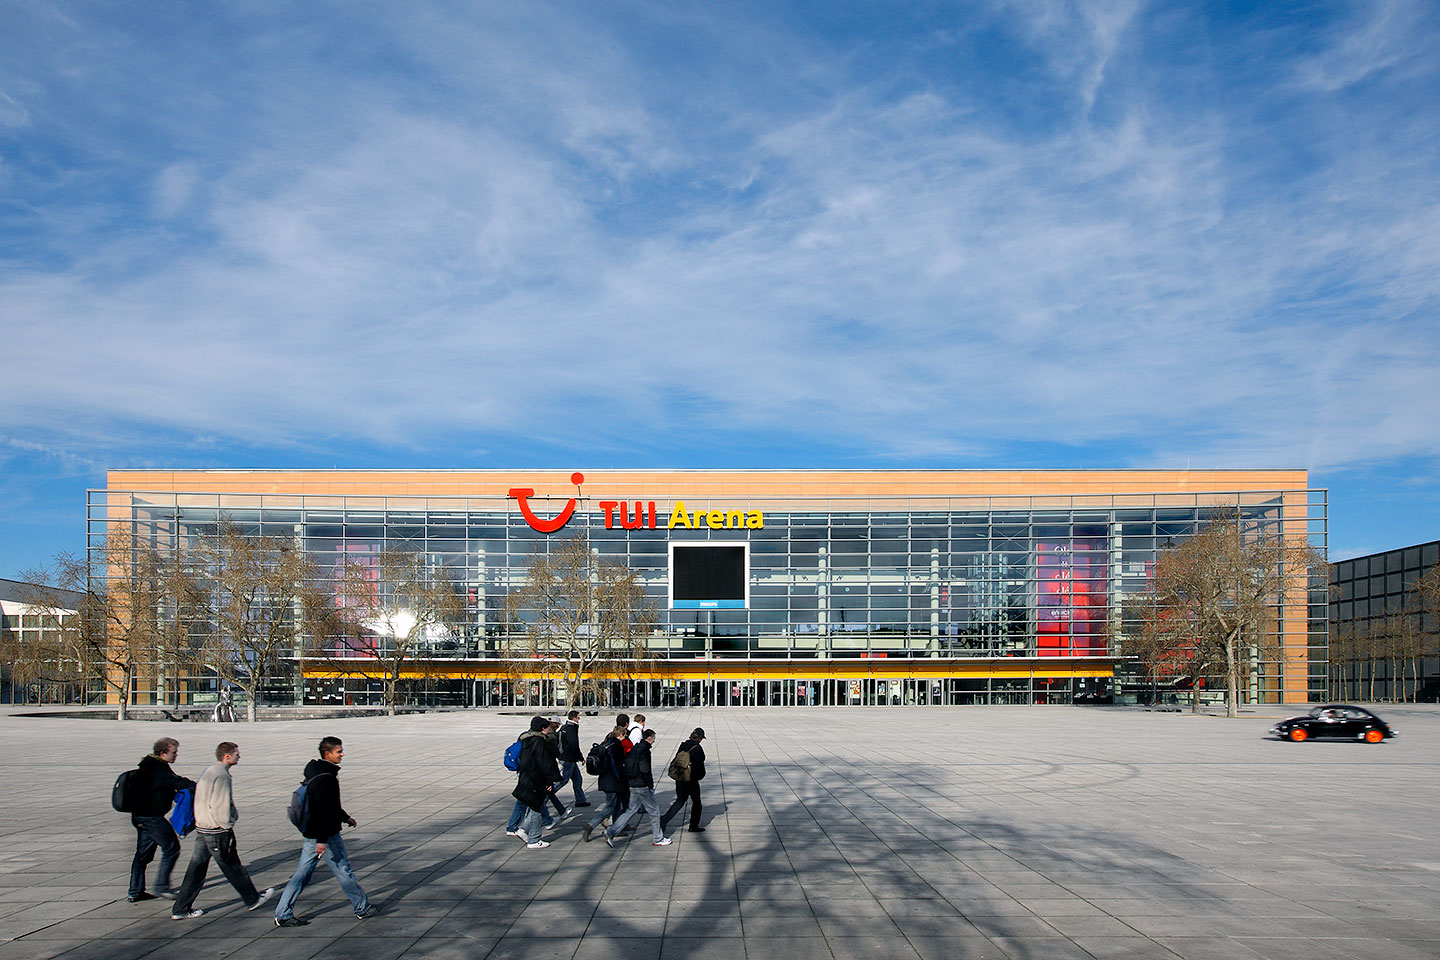 Expo Plaza Hannover Arena Expo 2000 Hannover Sprenger Von Der Lippe